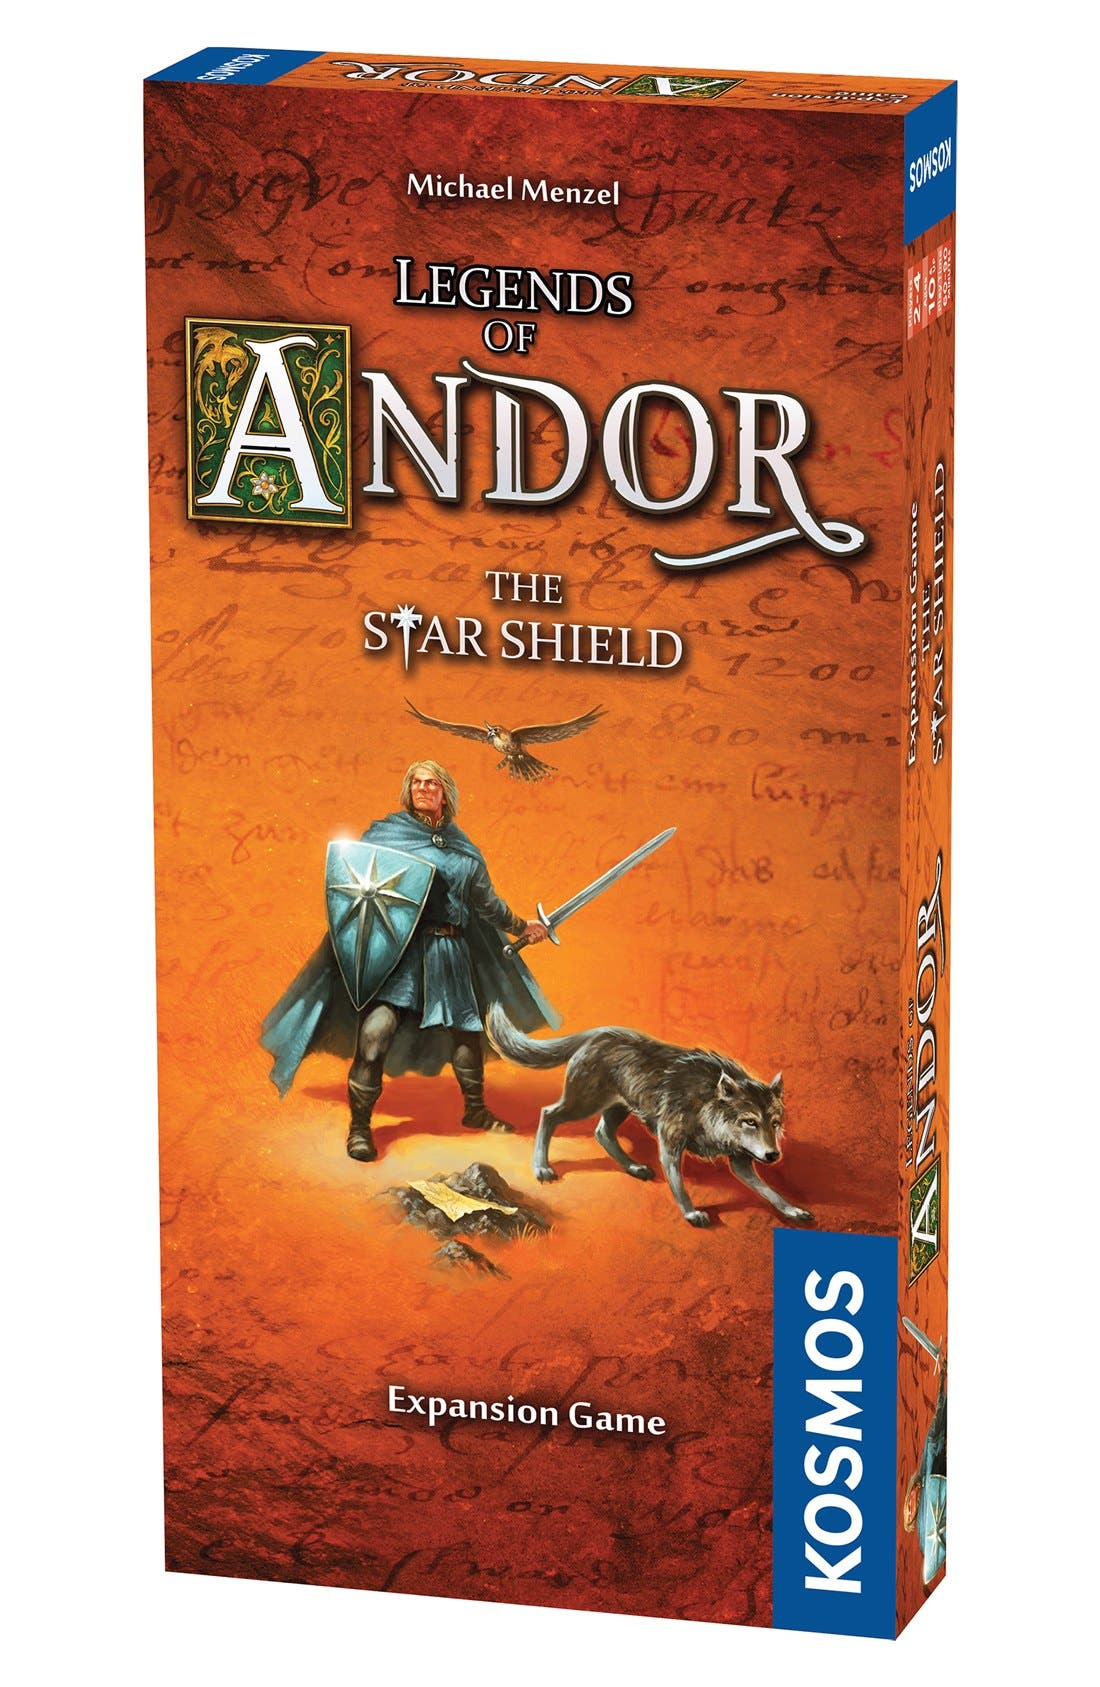 Main Image - Thames & Kosmos 'Legends of Andor - The Star Shield' Game Expansion Pack